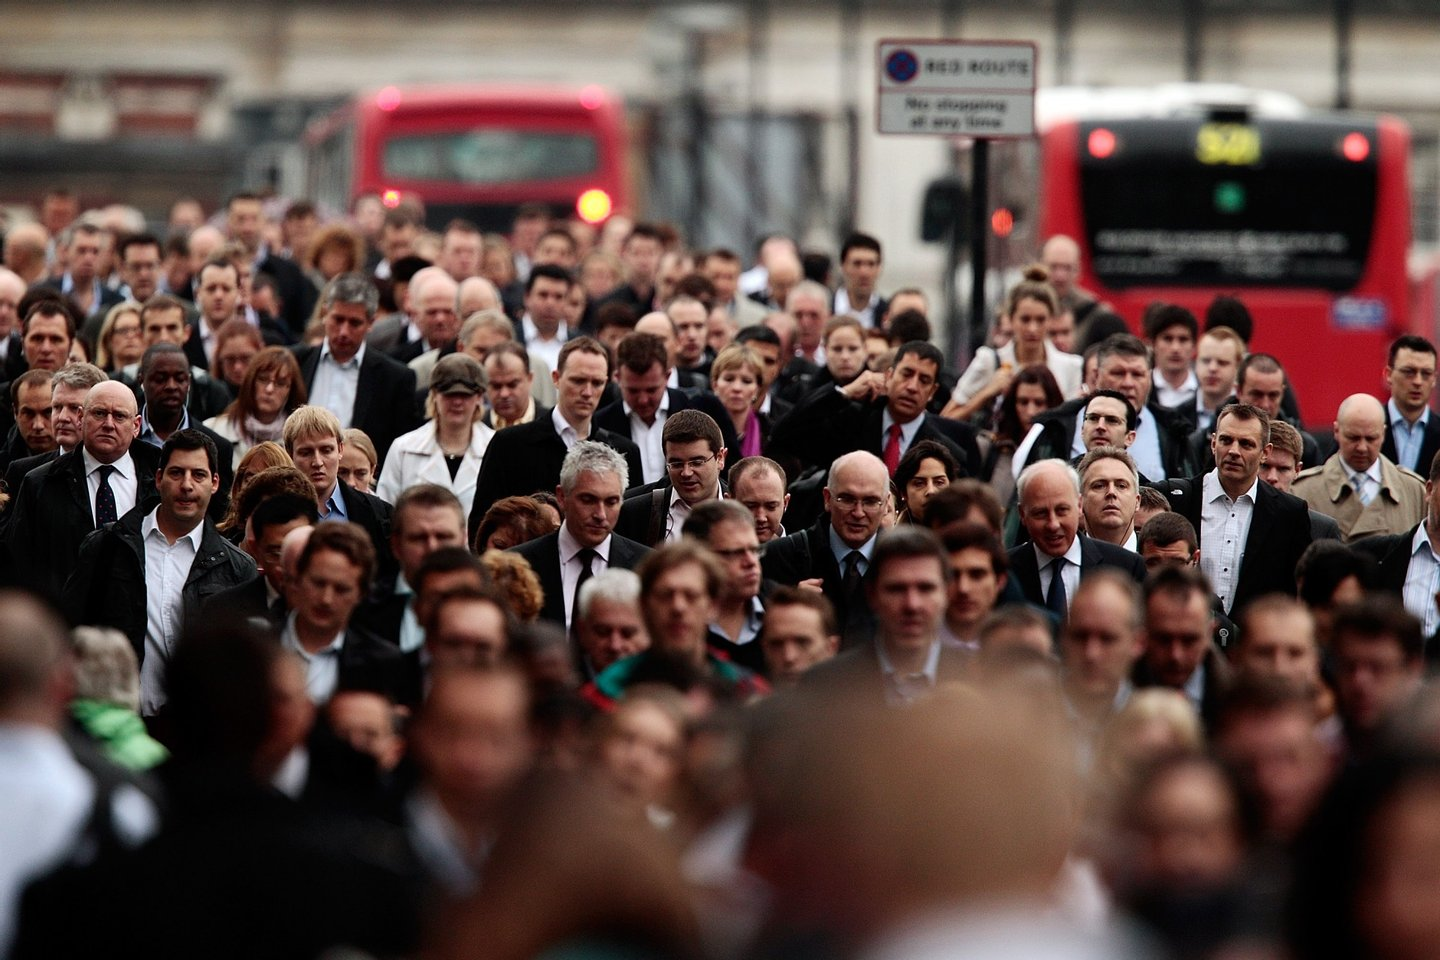 LONDON, ENGLAND - OCTOBER 04: Commuters walk across London Bridge during morning rush hour on October 4, 2010 in London, England. London Underground workers are staging a 24 hour walk out over concerns at plans to cut jobs, causing large disruption to the capitals transport network. (Photo by Matthew Lloyd/Getty Images)